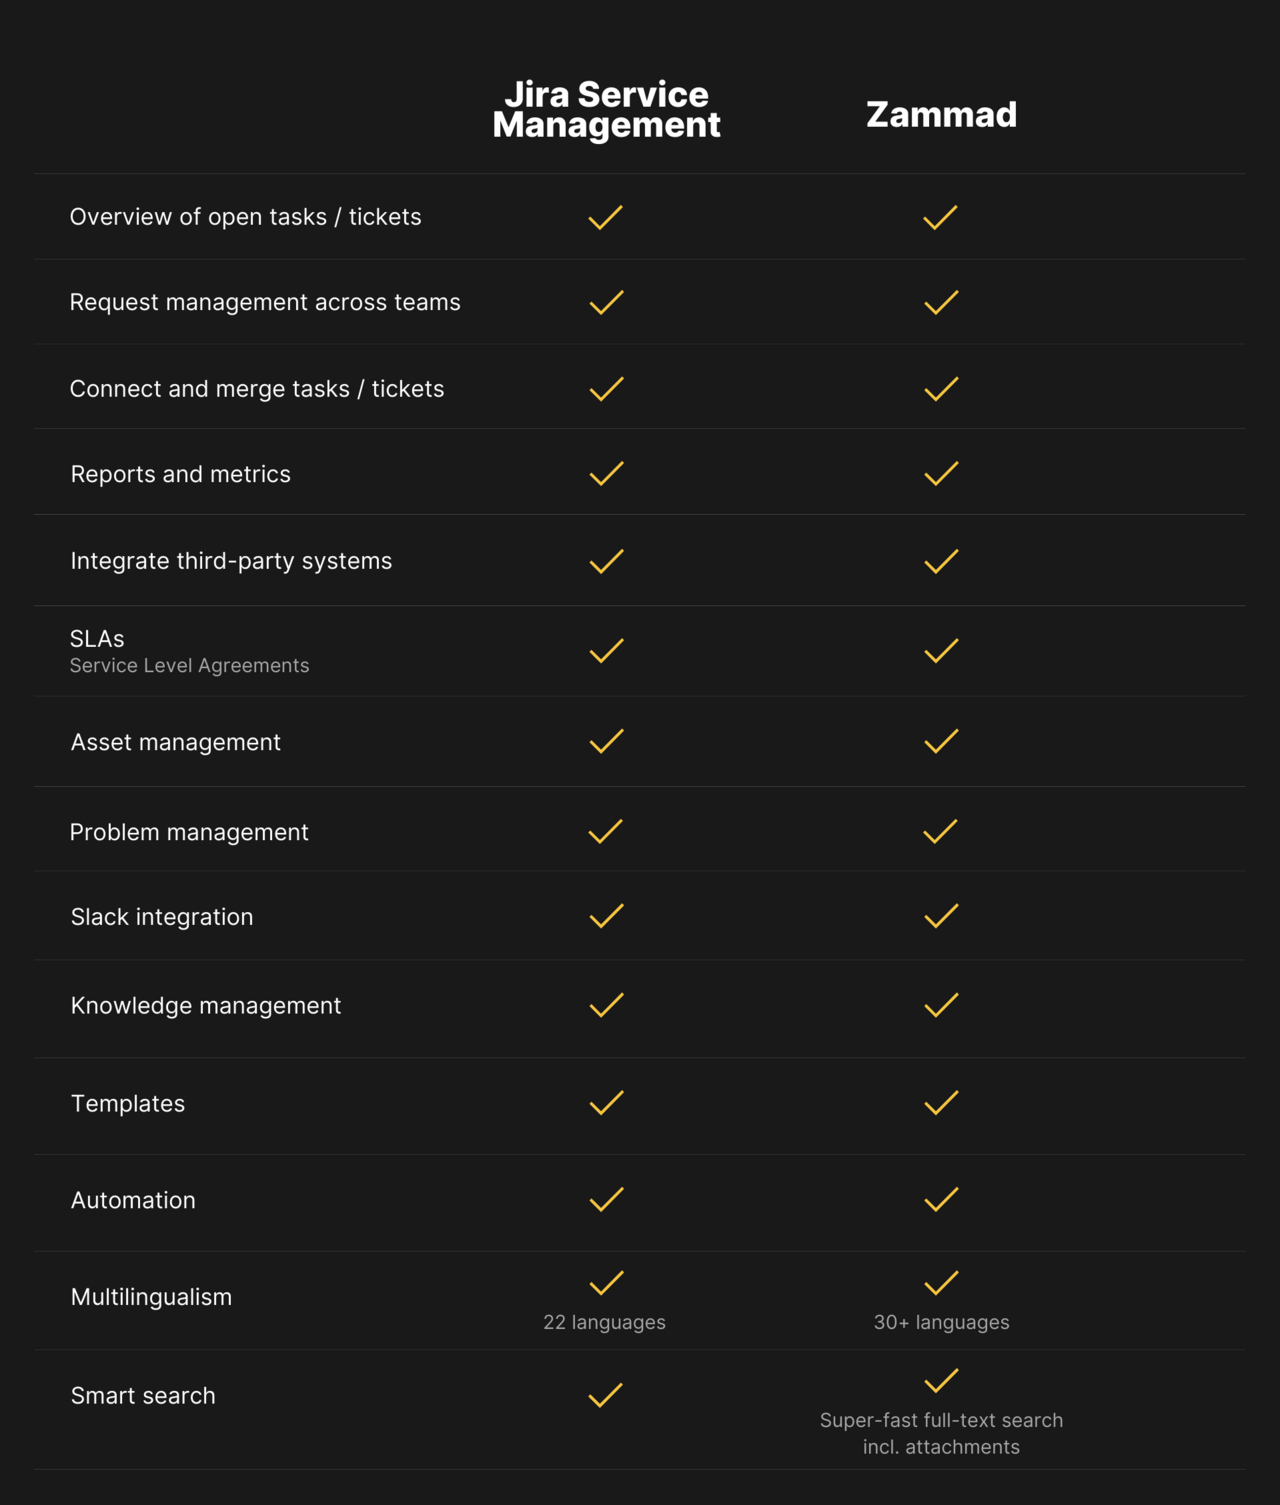 Table comparing the features of Jira Service Management and Zammad